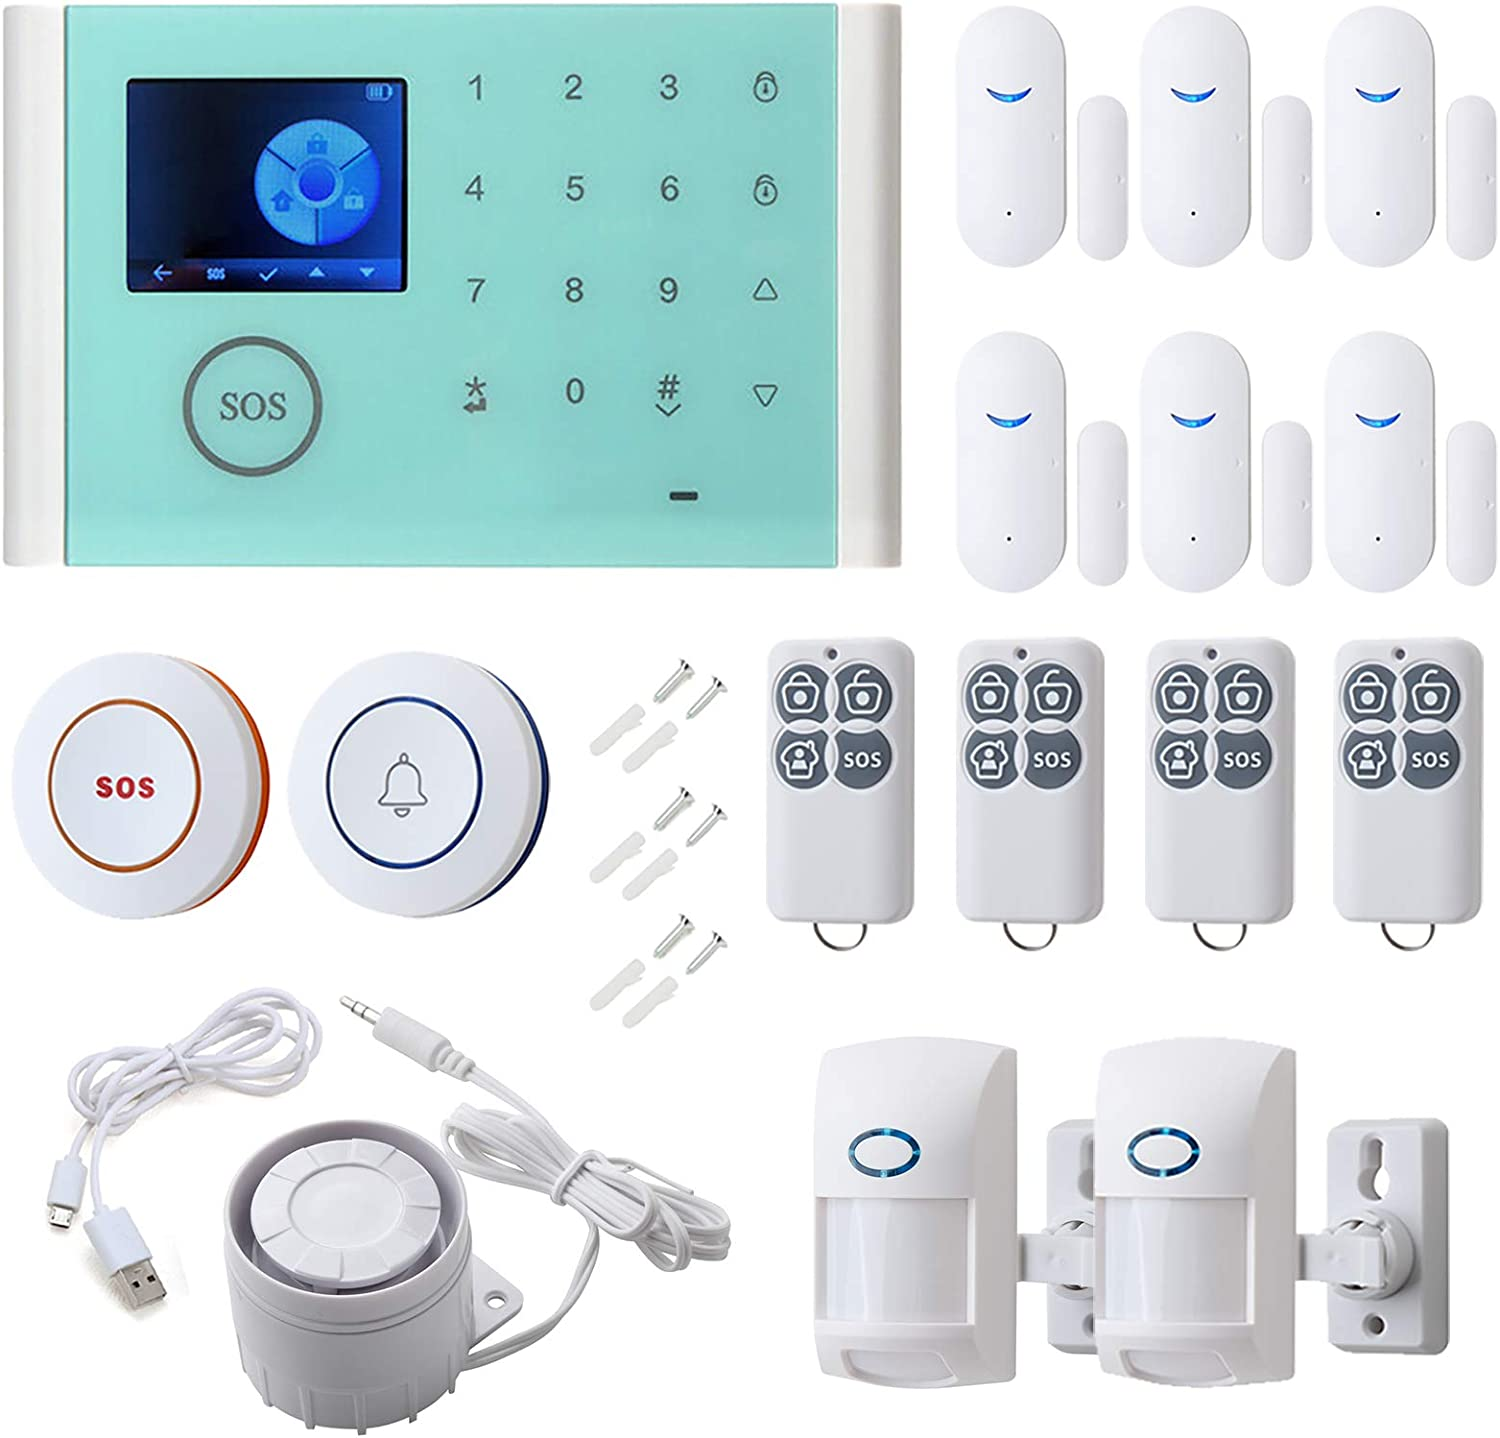 16pcs Smart Home Alarm System - Door Sensor PIR Detector LED Touch Screen, SMS Call Auto Dial and APP Remote Control, WiFi+GSM +GPRS Security System Burglar Alarm DIY Kit for House Office Business